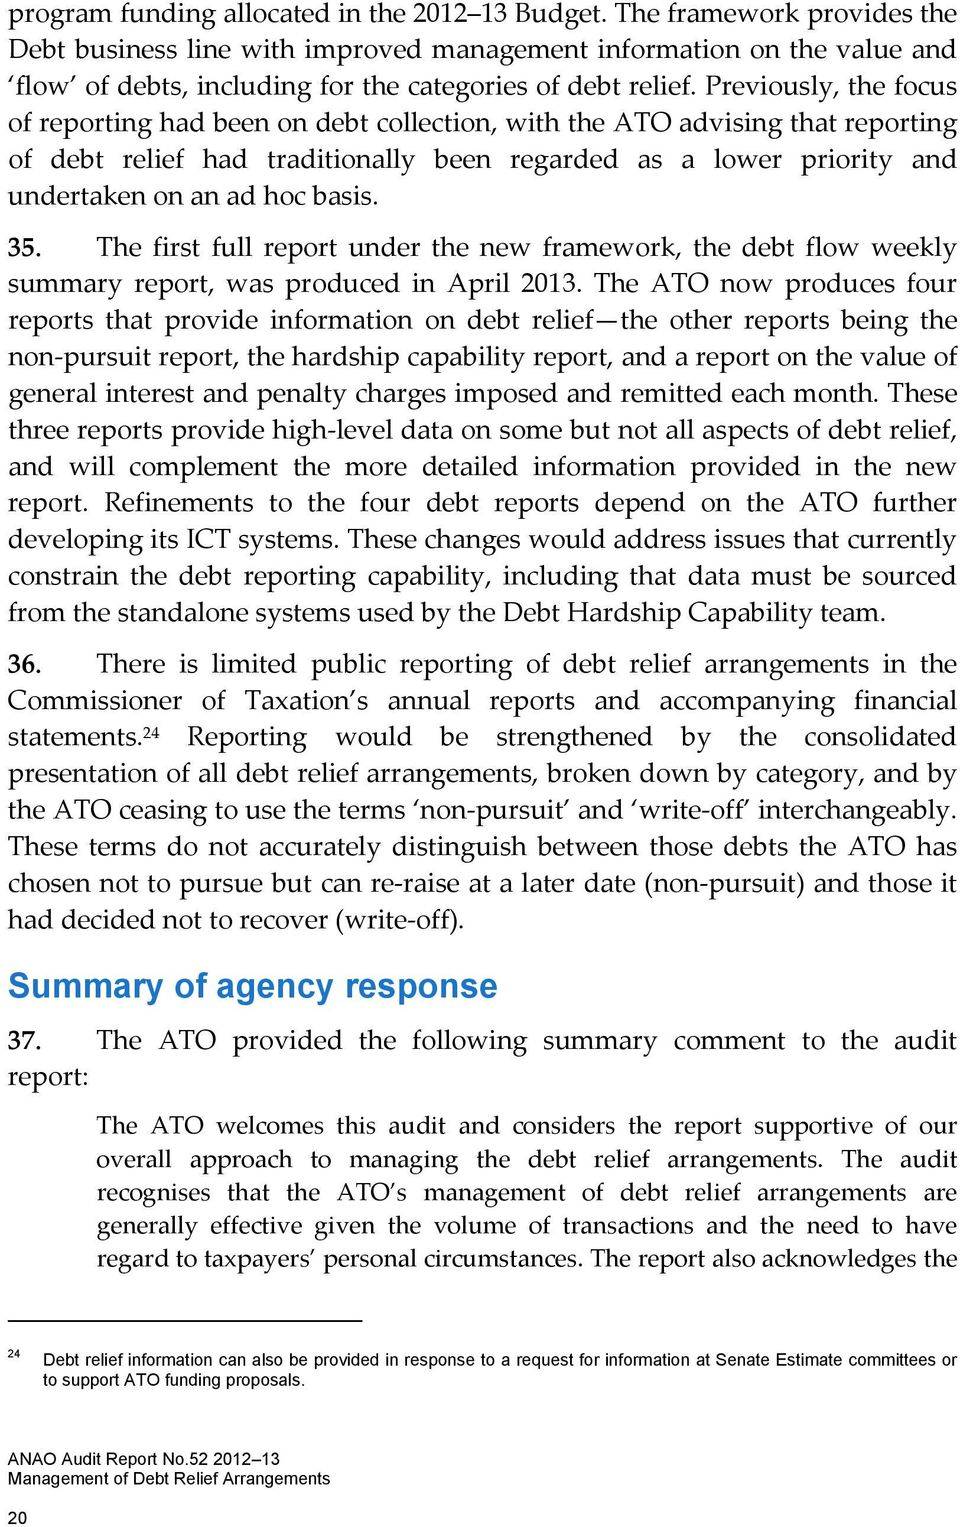 Previously, the focus of reporting had been on debt collection, with the ATO advising that reporting of debt relief had traditionally been regarded as a lower priority and undertaken on an ad hoc